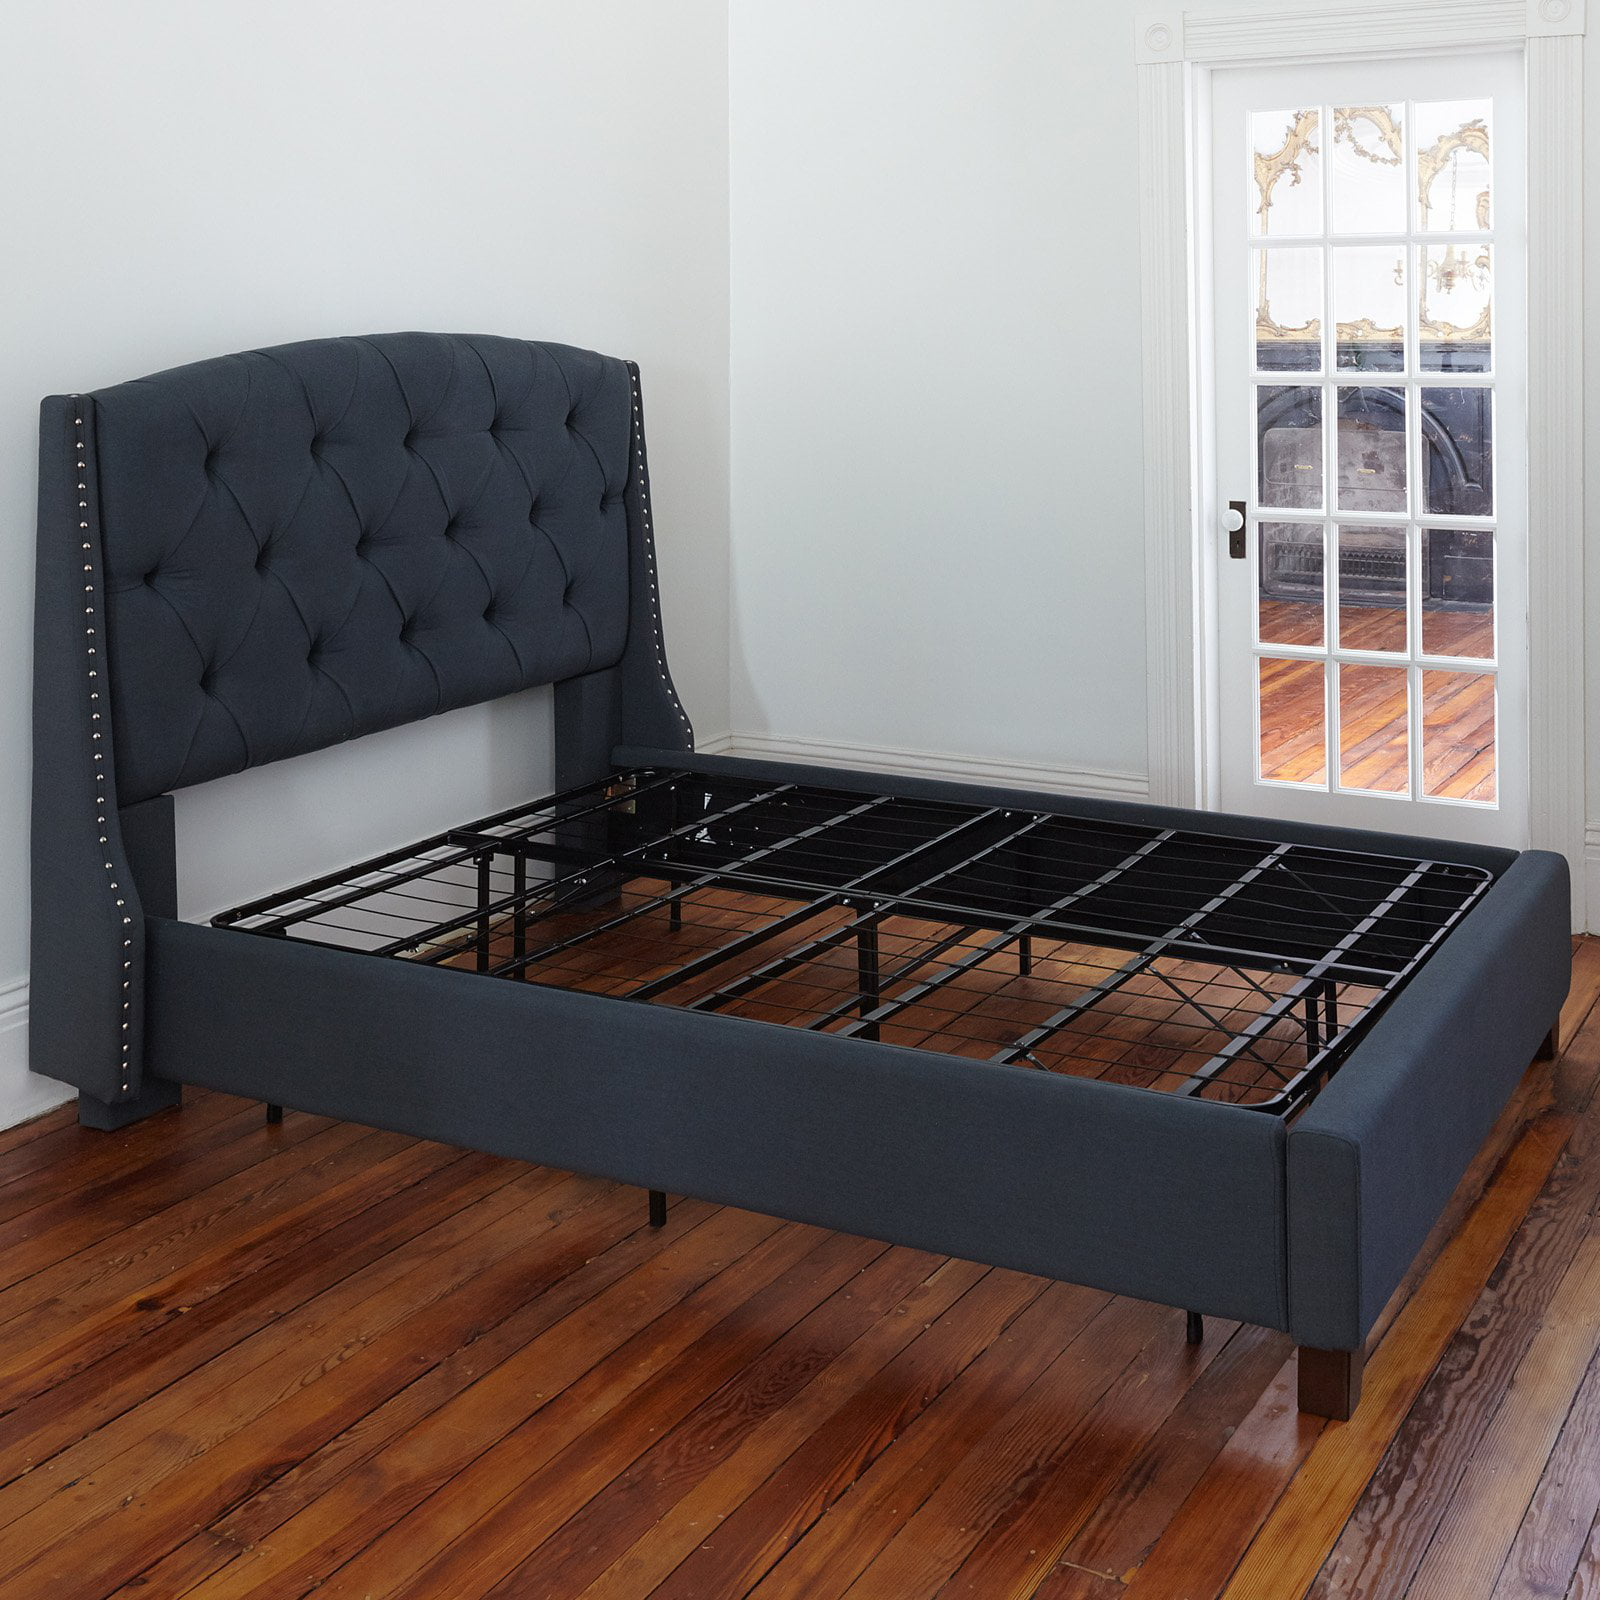 Classic Brands Hercules 14 in. Platform Heavy Duty Metal Bed Frame by Classic Brands